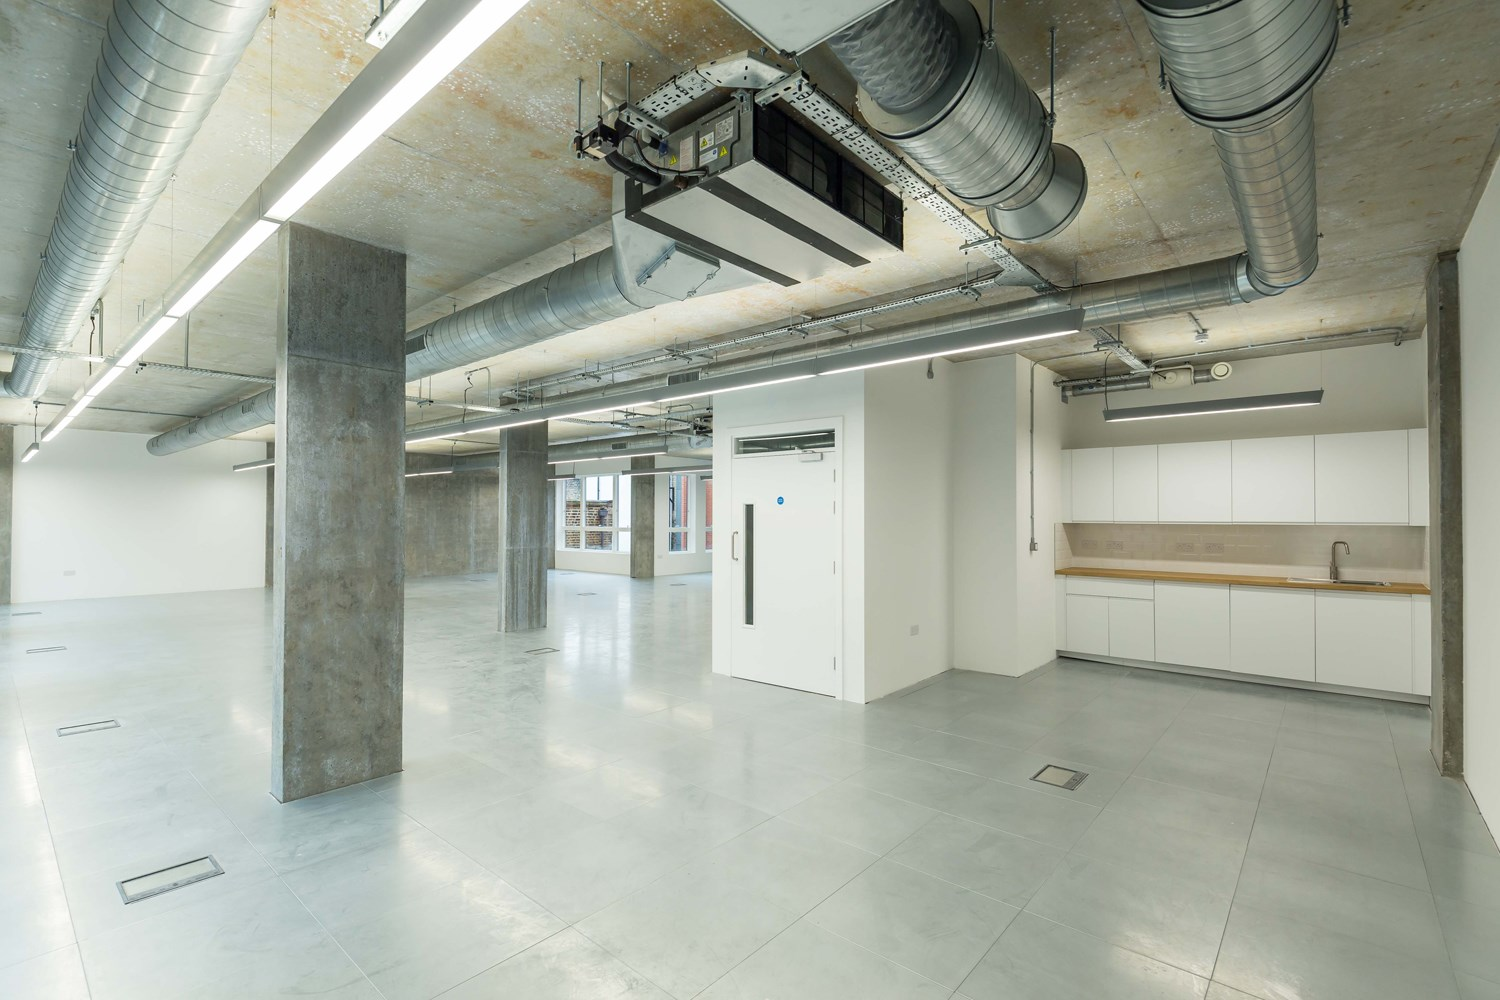 27 Downham Road N1 5AA Haggerston Office First Floor Internal1